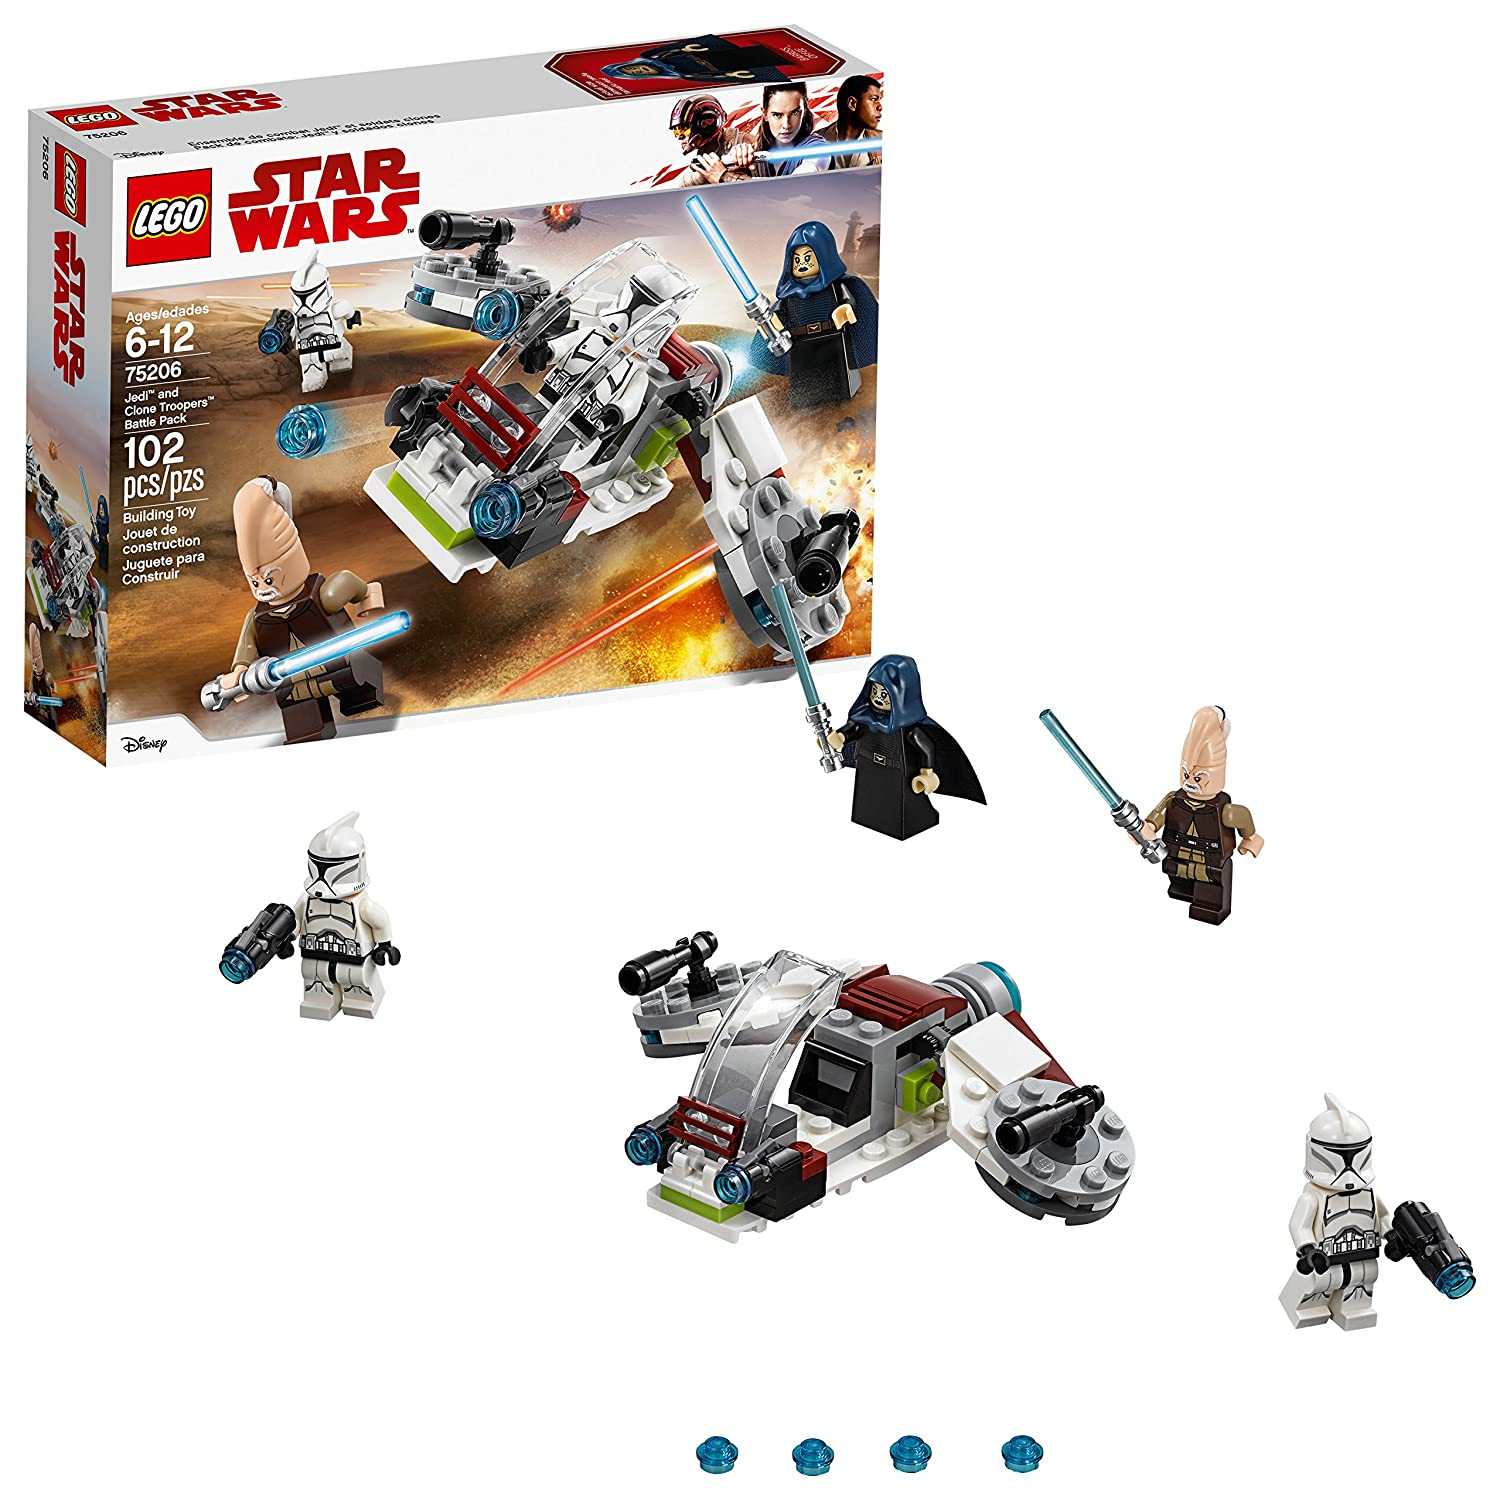 Lego Star Wars Jedi Clone Troopers Battle Pack 75206 Building Kit 102 Piece